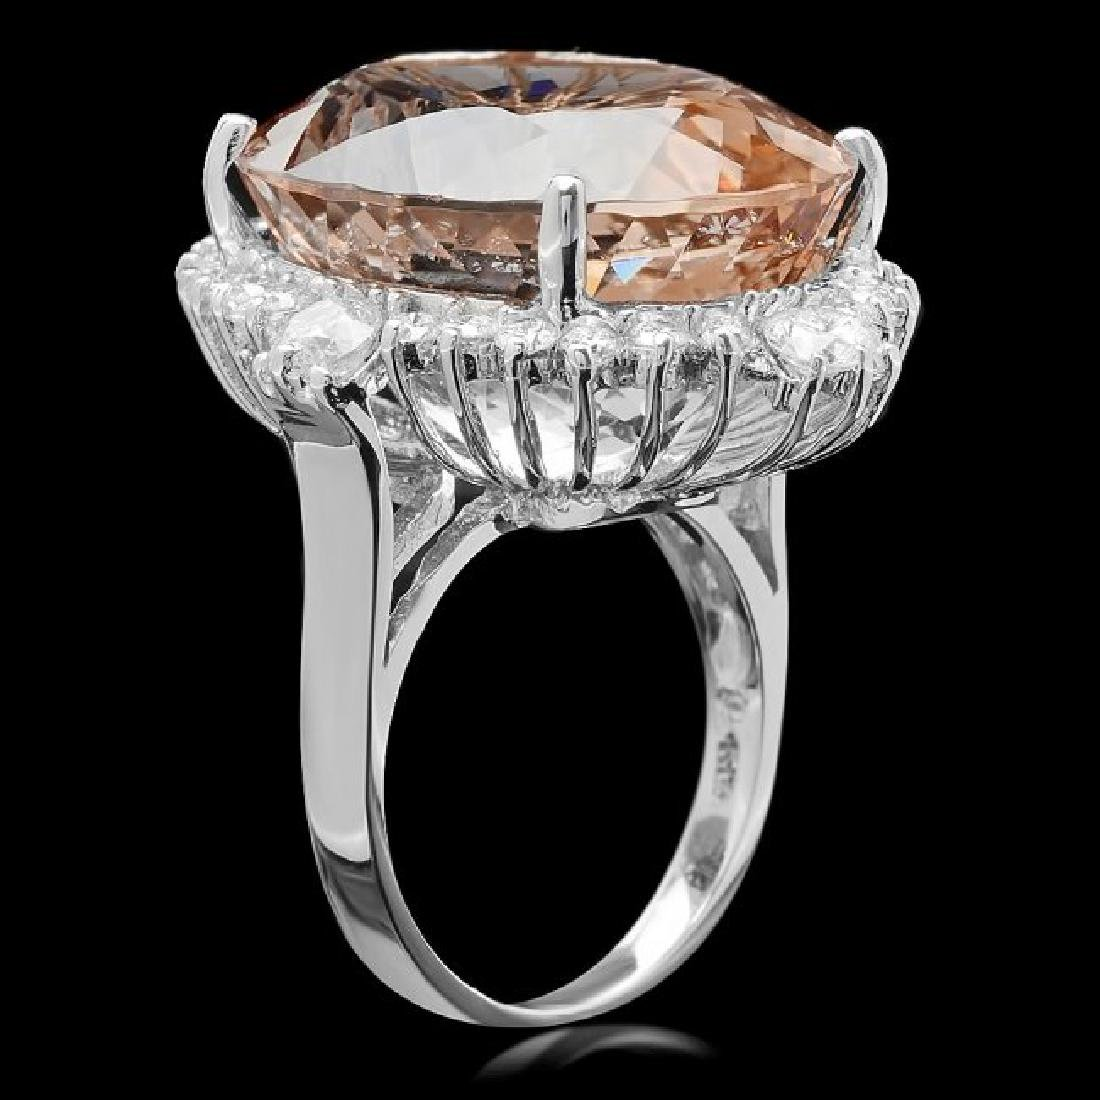 14k Gold 35.00ct Morganite 1.85ct Diamond Ring - 2